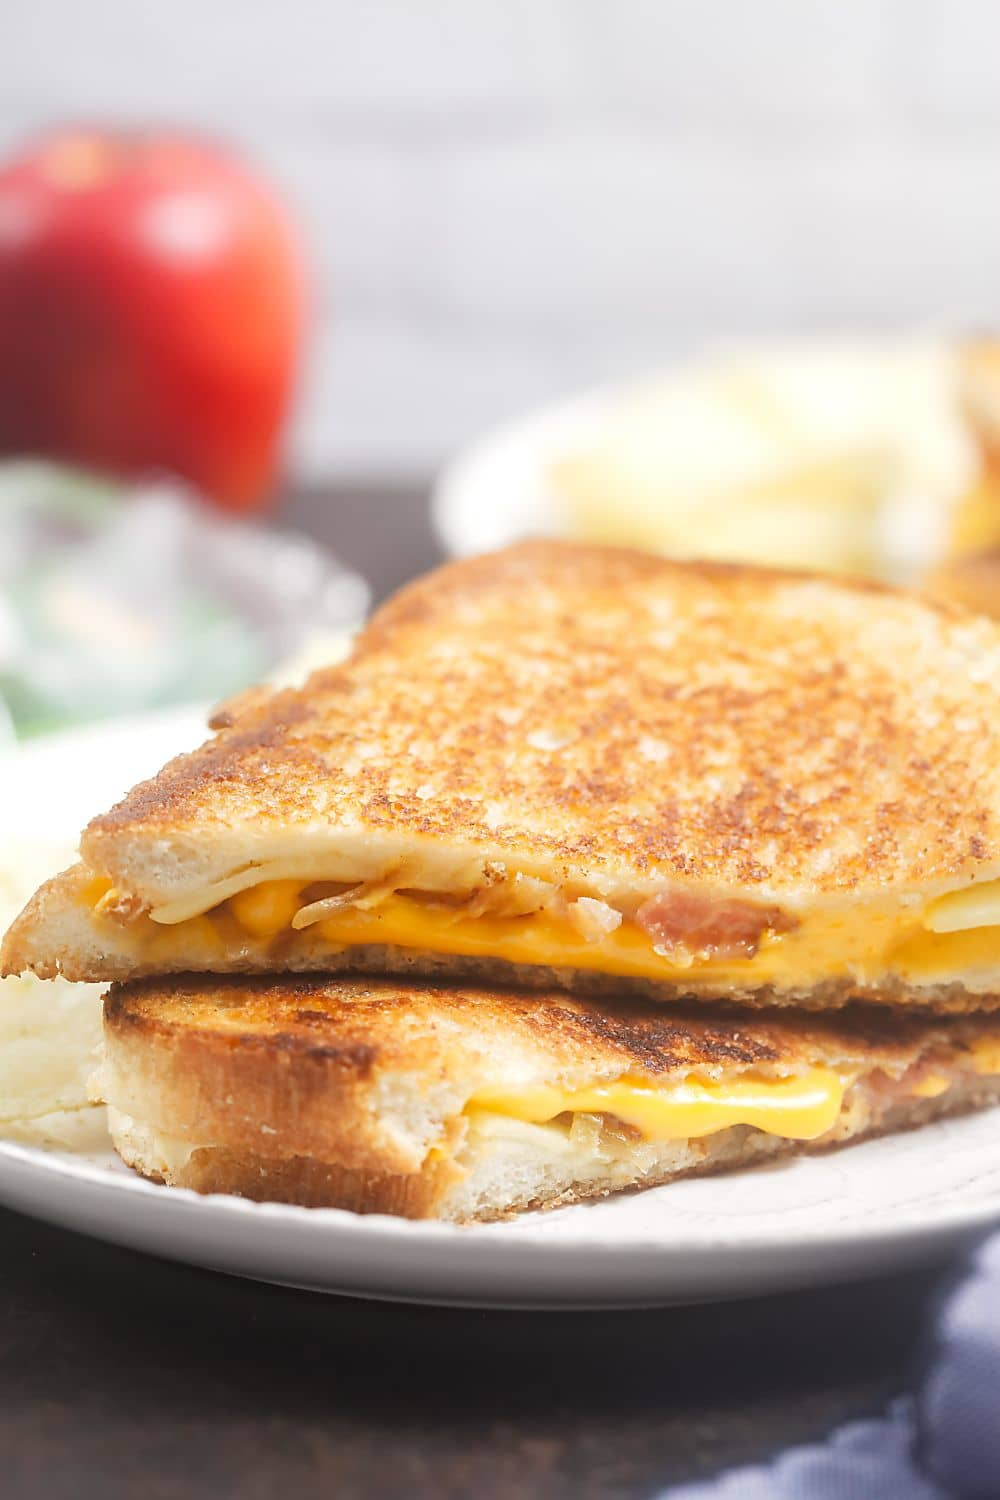 Fancy Grilled Cheese with Caramelized Onion, Apples, and Bacon